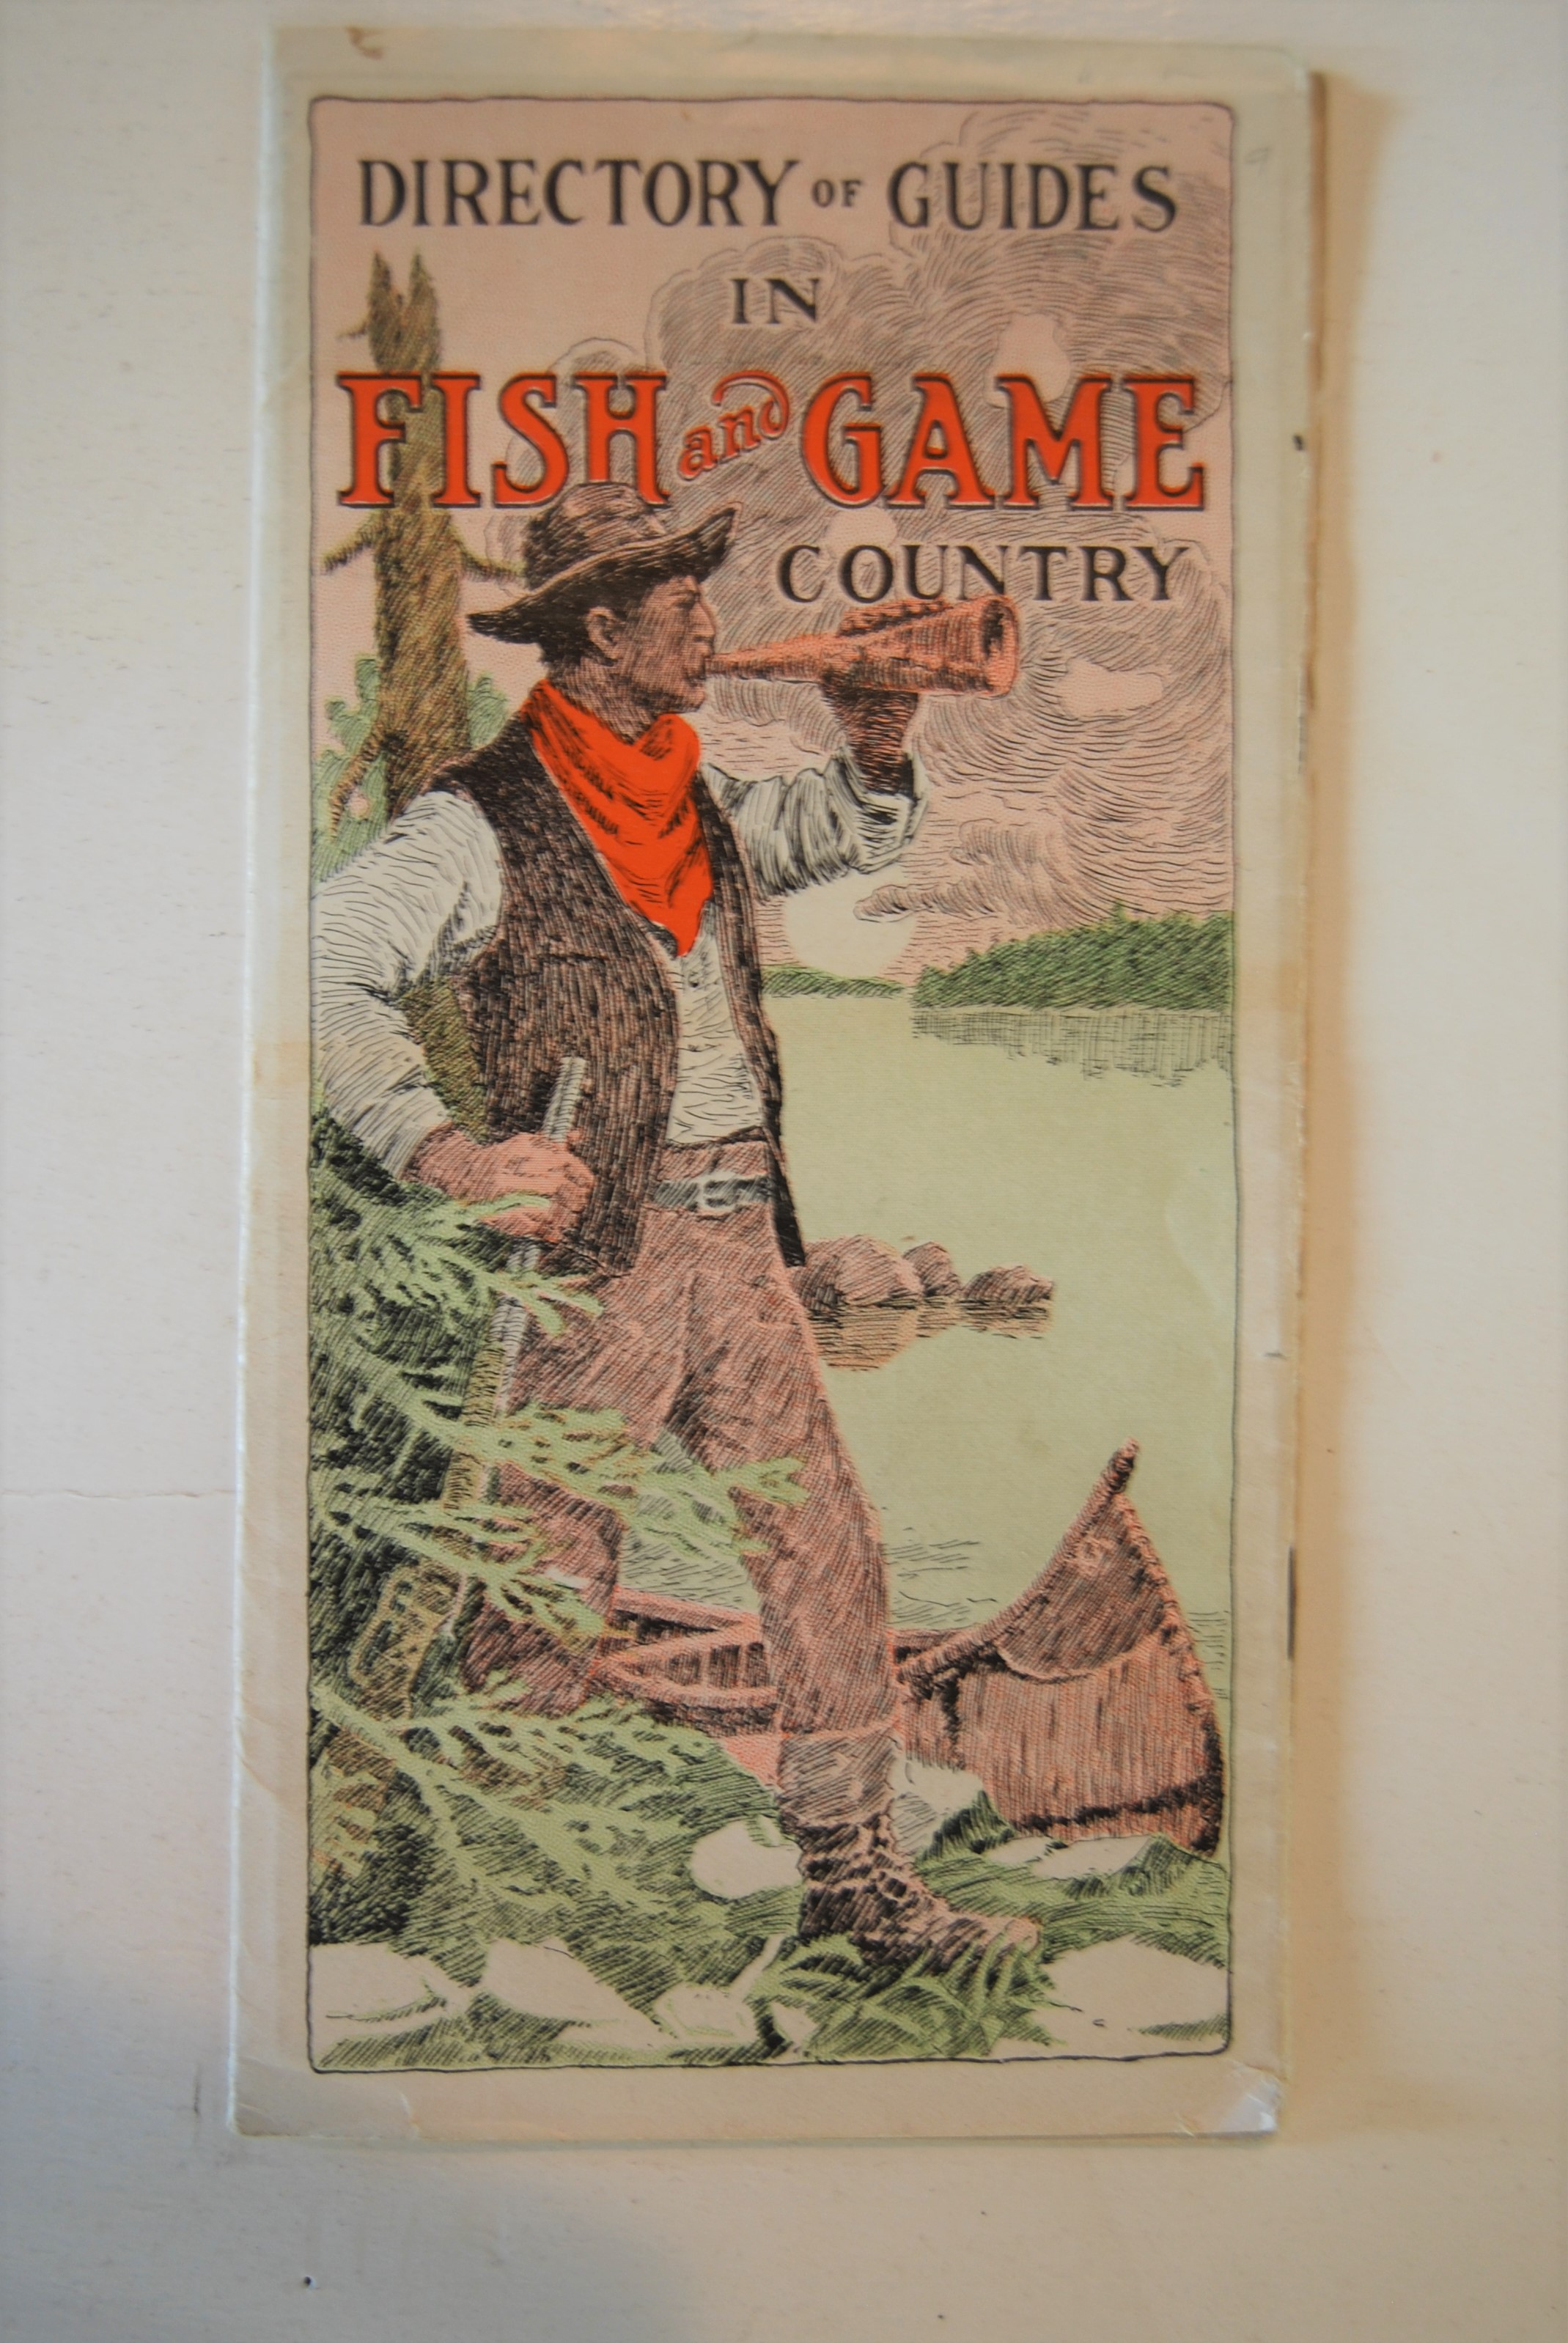 Image for DIRECTORY OF GUIDES IN FISH & GAME COUNTRY. 8vo illus. Portland: Passenger Traffic Dept. Maine Central Railroad. 22 p. + fold-out Map. 1914. Paper Wraps.